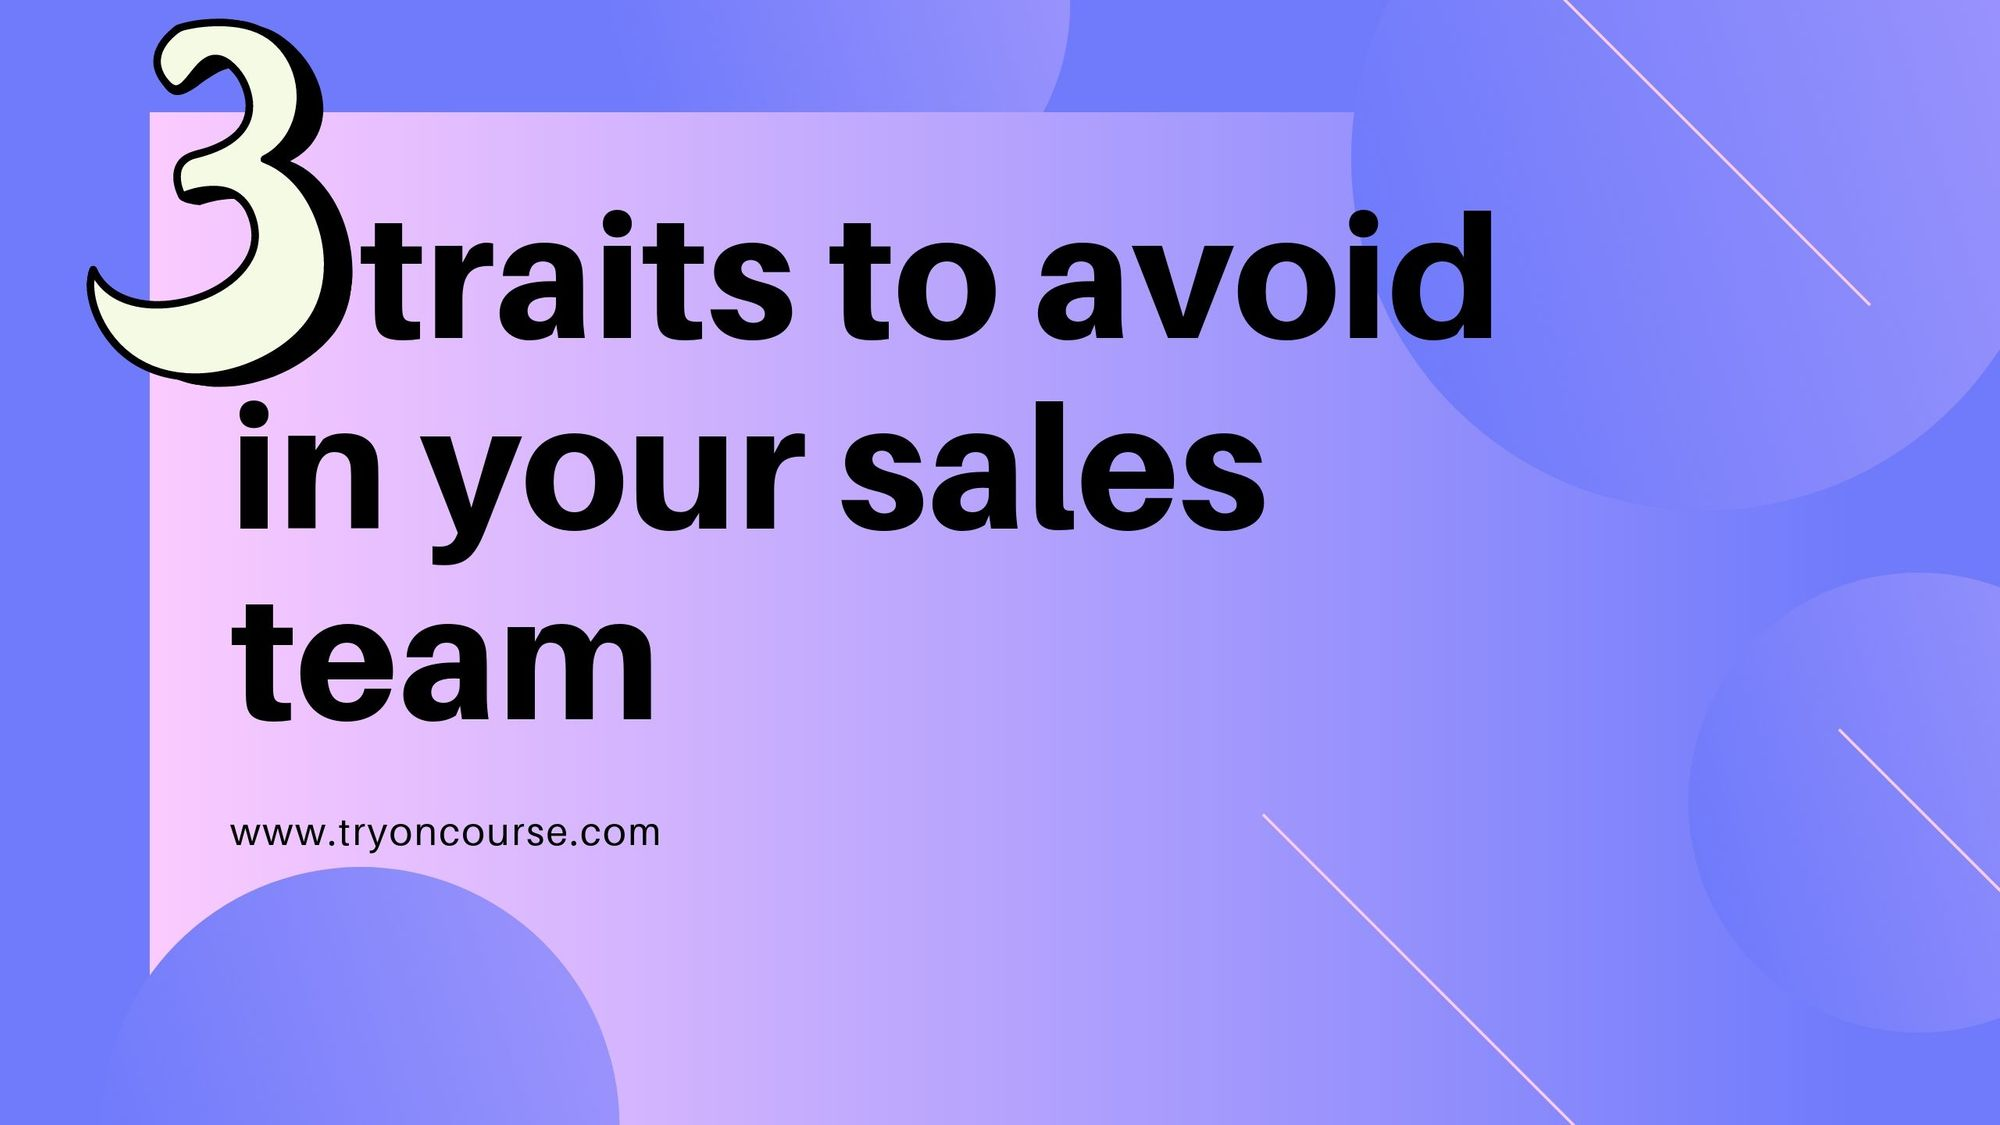 3 traits to avoid in your sales team